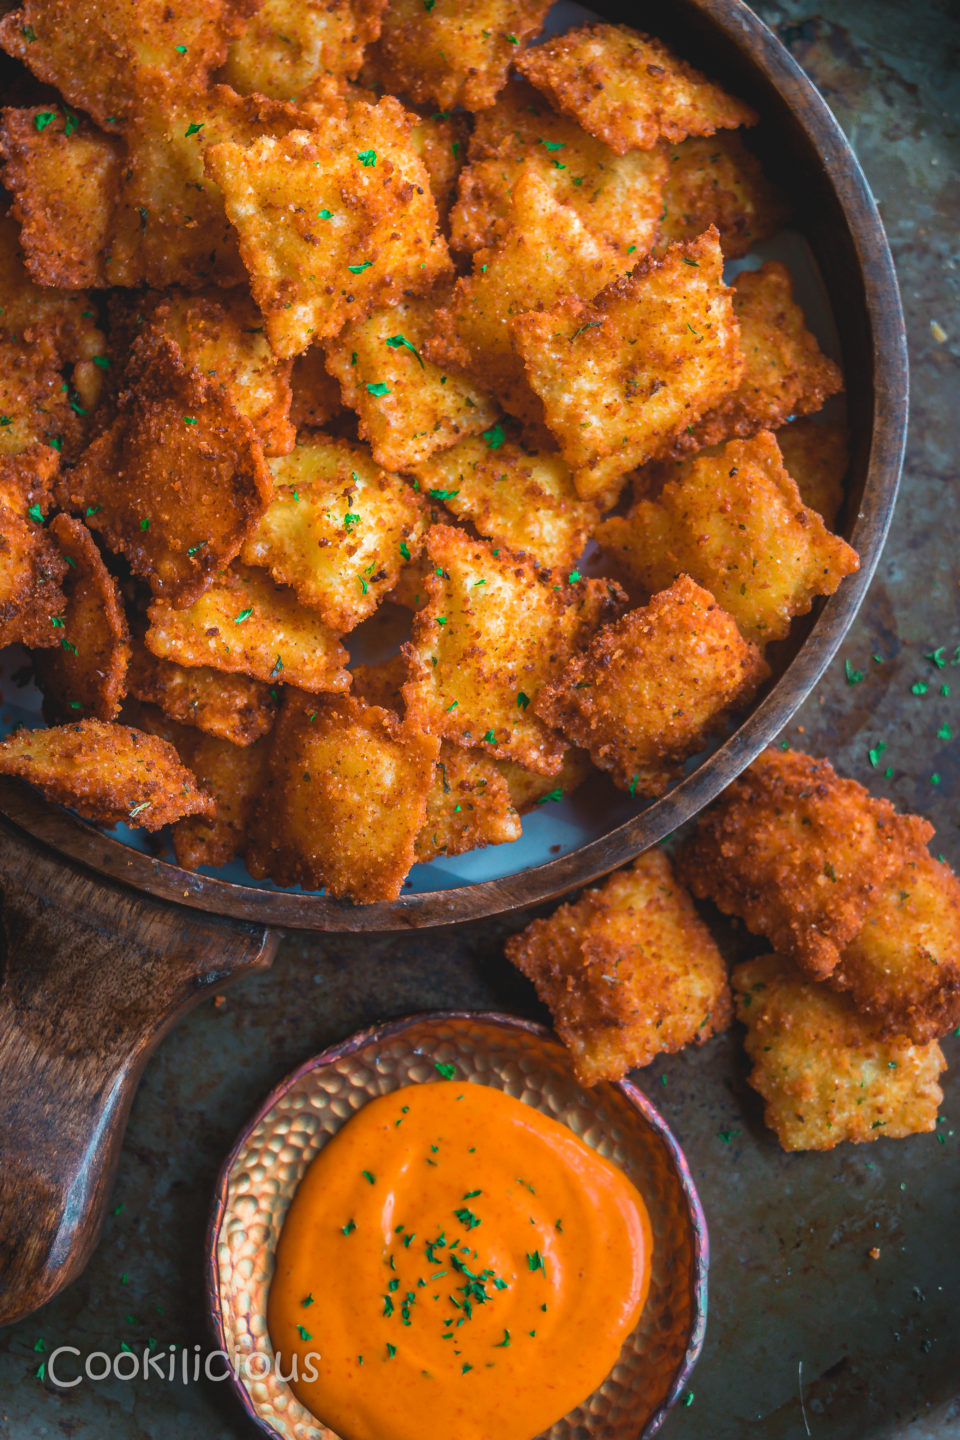 Copycat Olive Garden Cheesy Fried Ravioli in a tray with a dip on the side